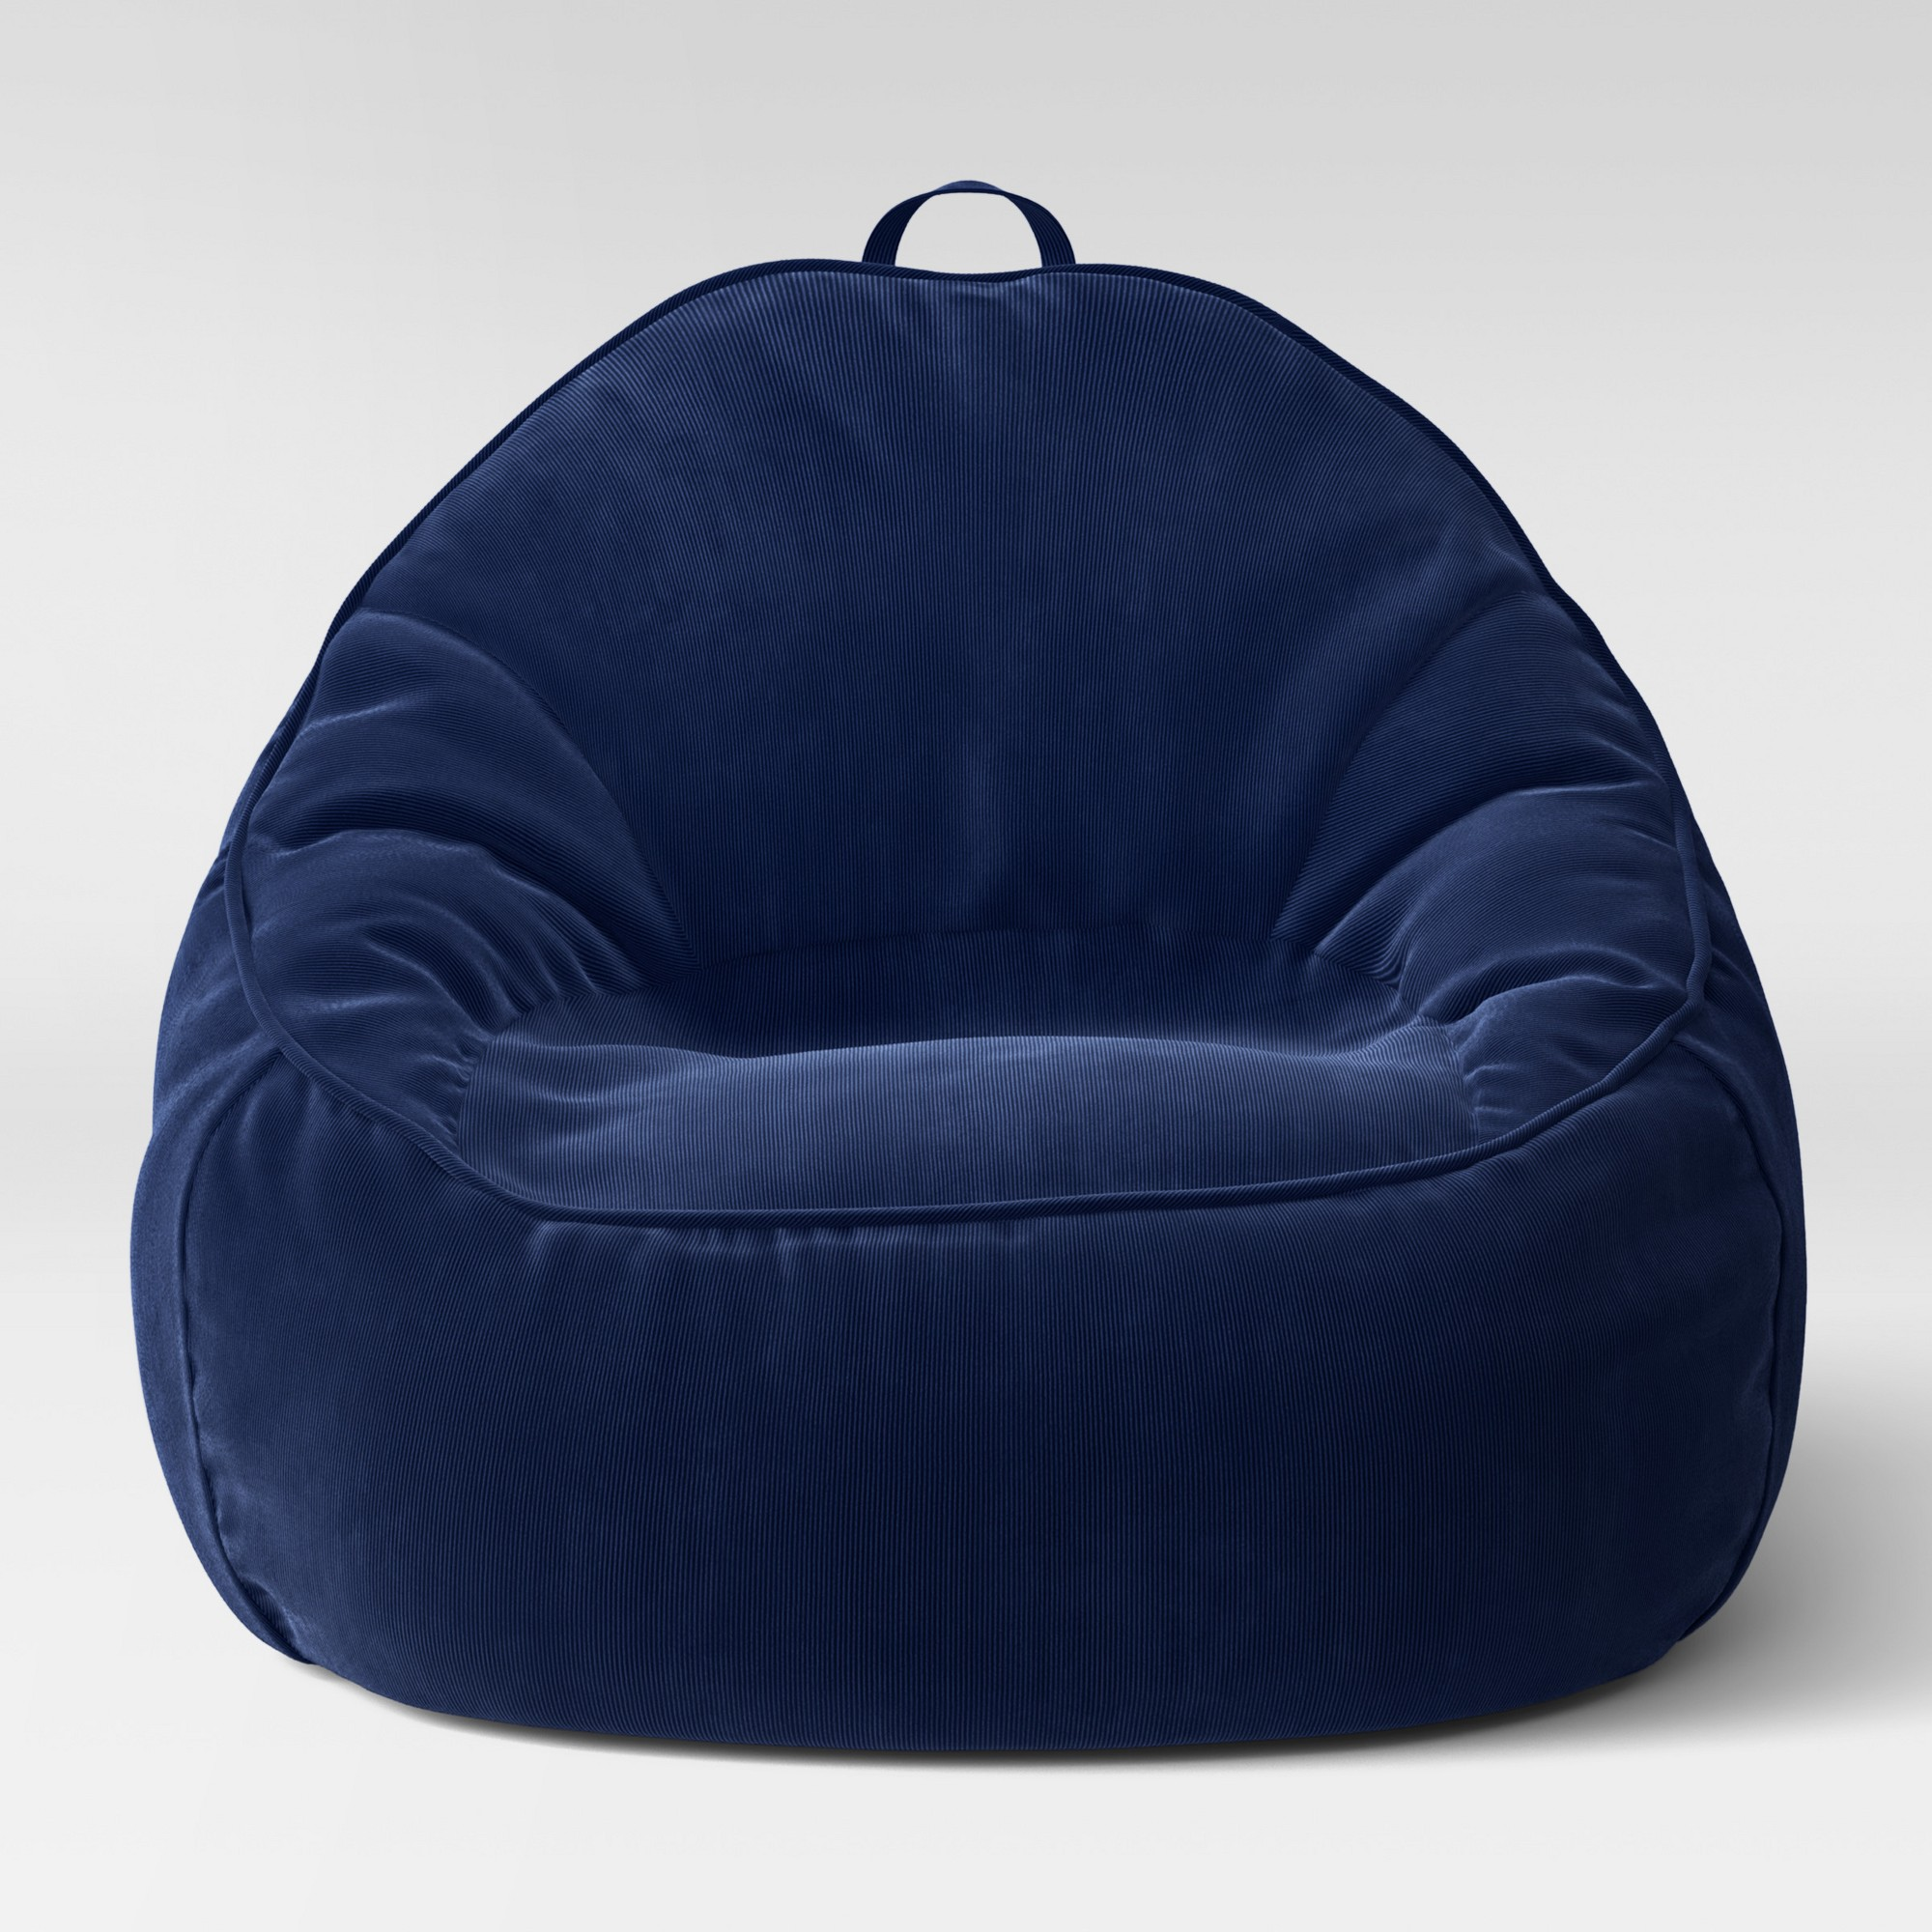 Fabulous Xl Structured Bean Bag Chair Removable Cover Corduroy Blue Frankydiablos Diy Chair Ideas Frankydiabloscom